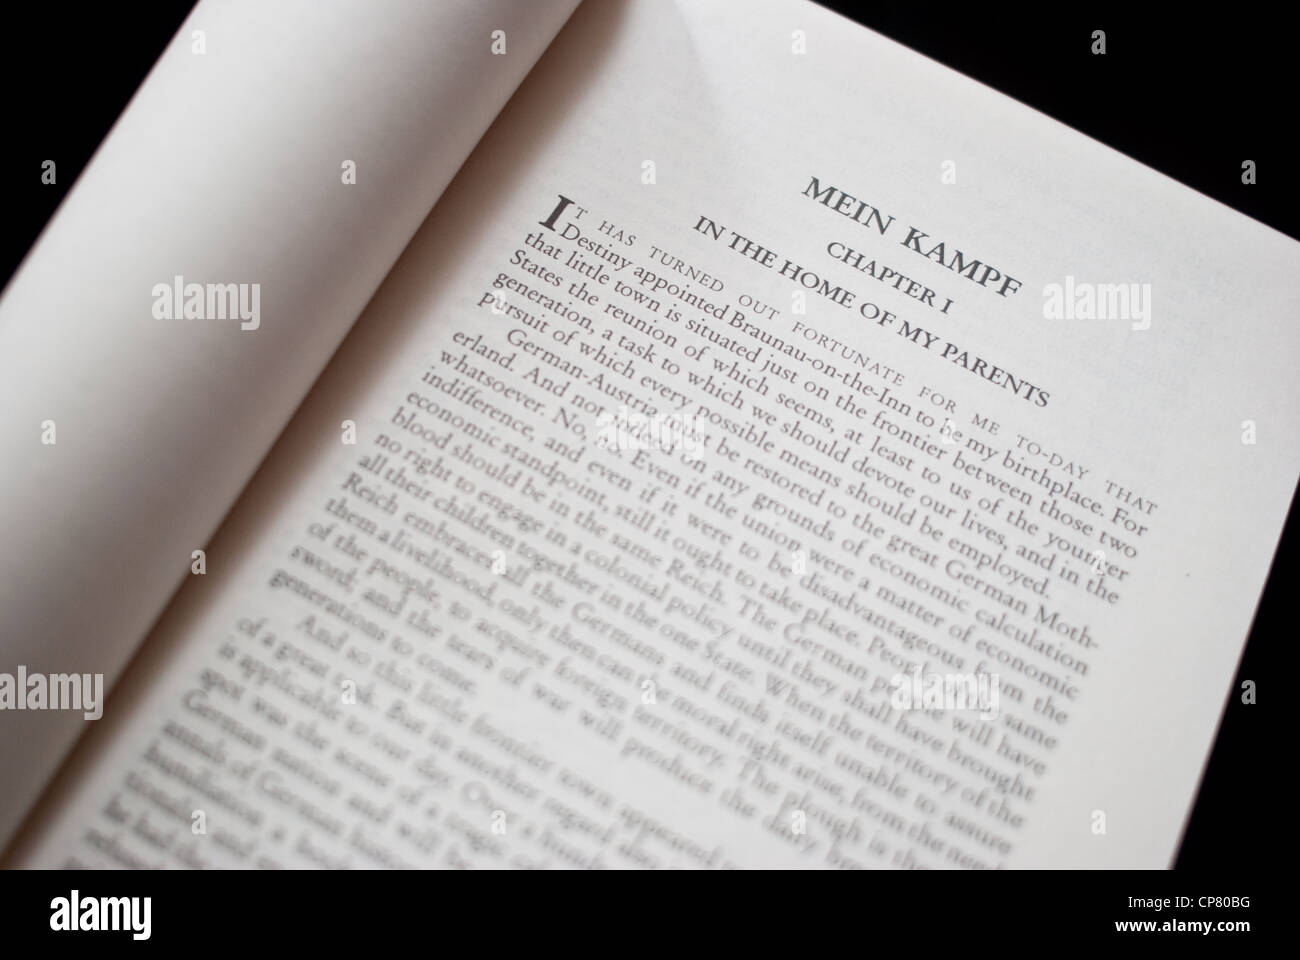 First page of 'Mein kampf' ( the English translation available in India) - Stock Image